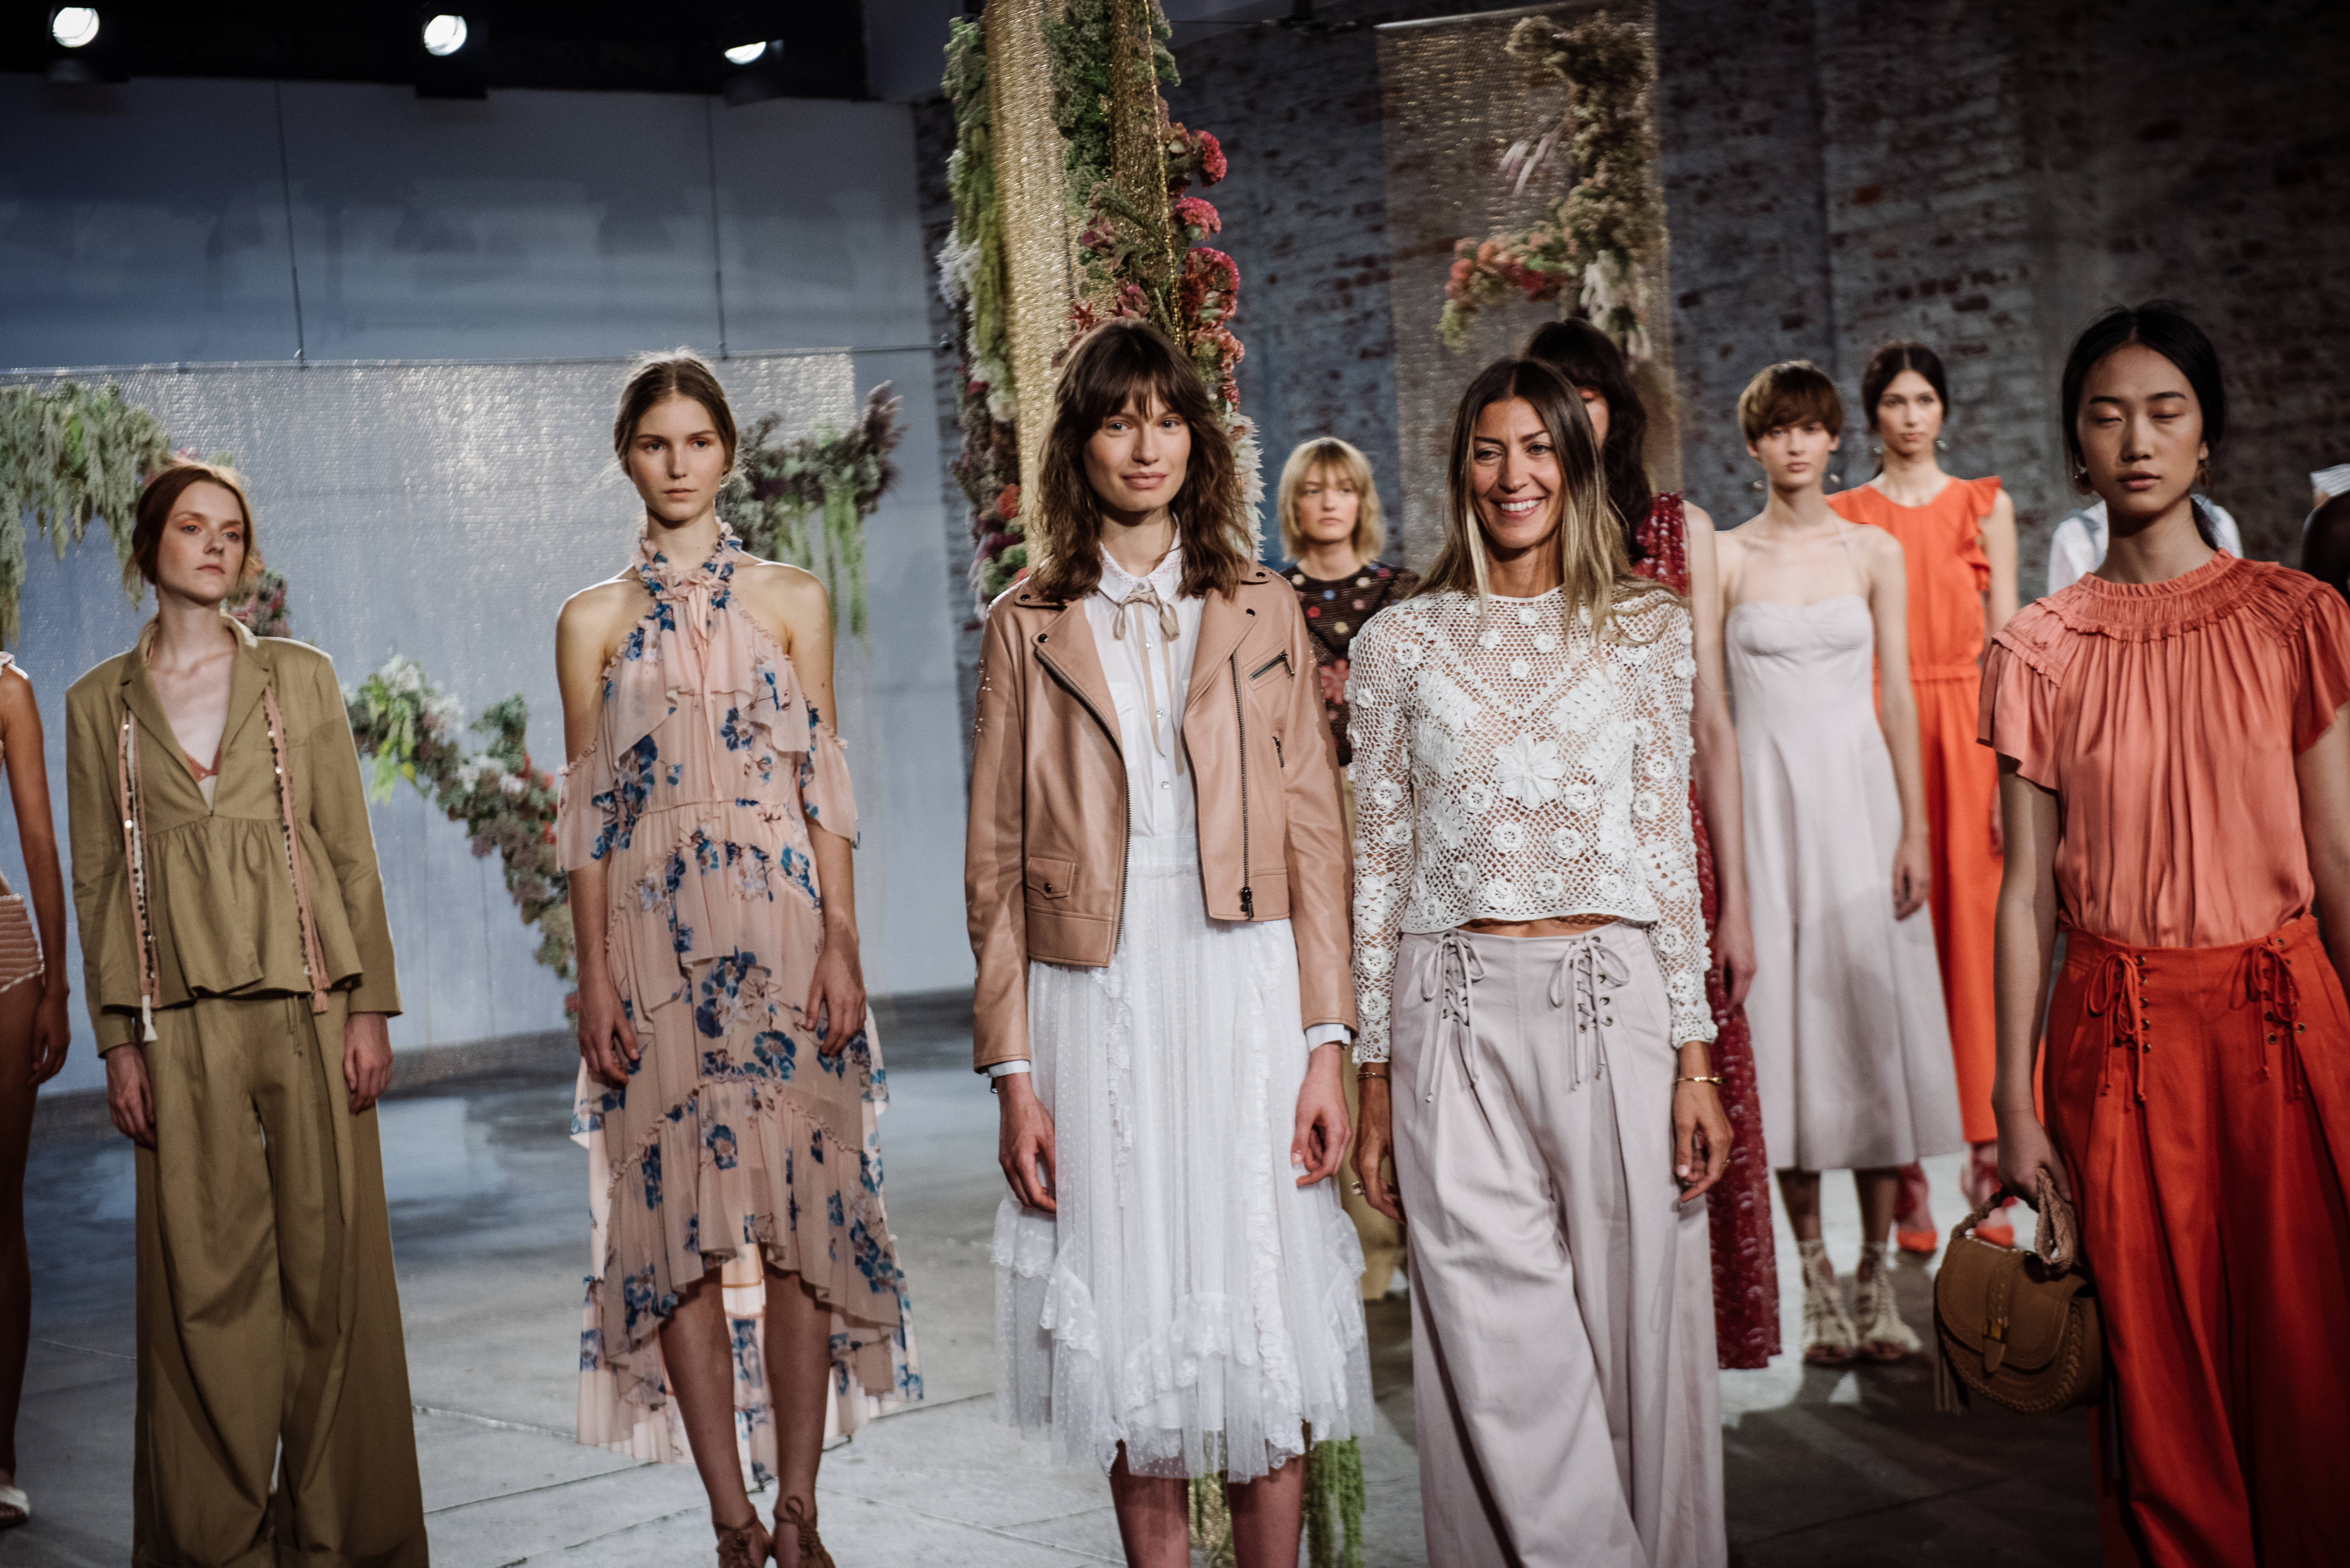 Ulla Johnson Spring 2017 collection